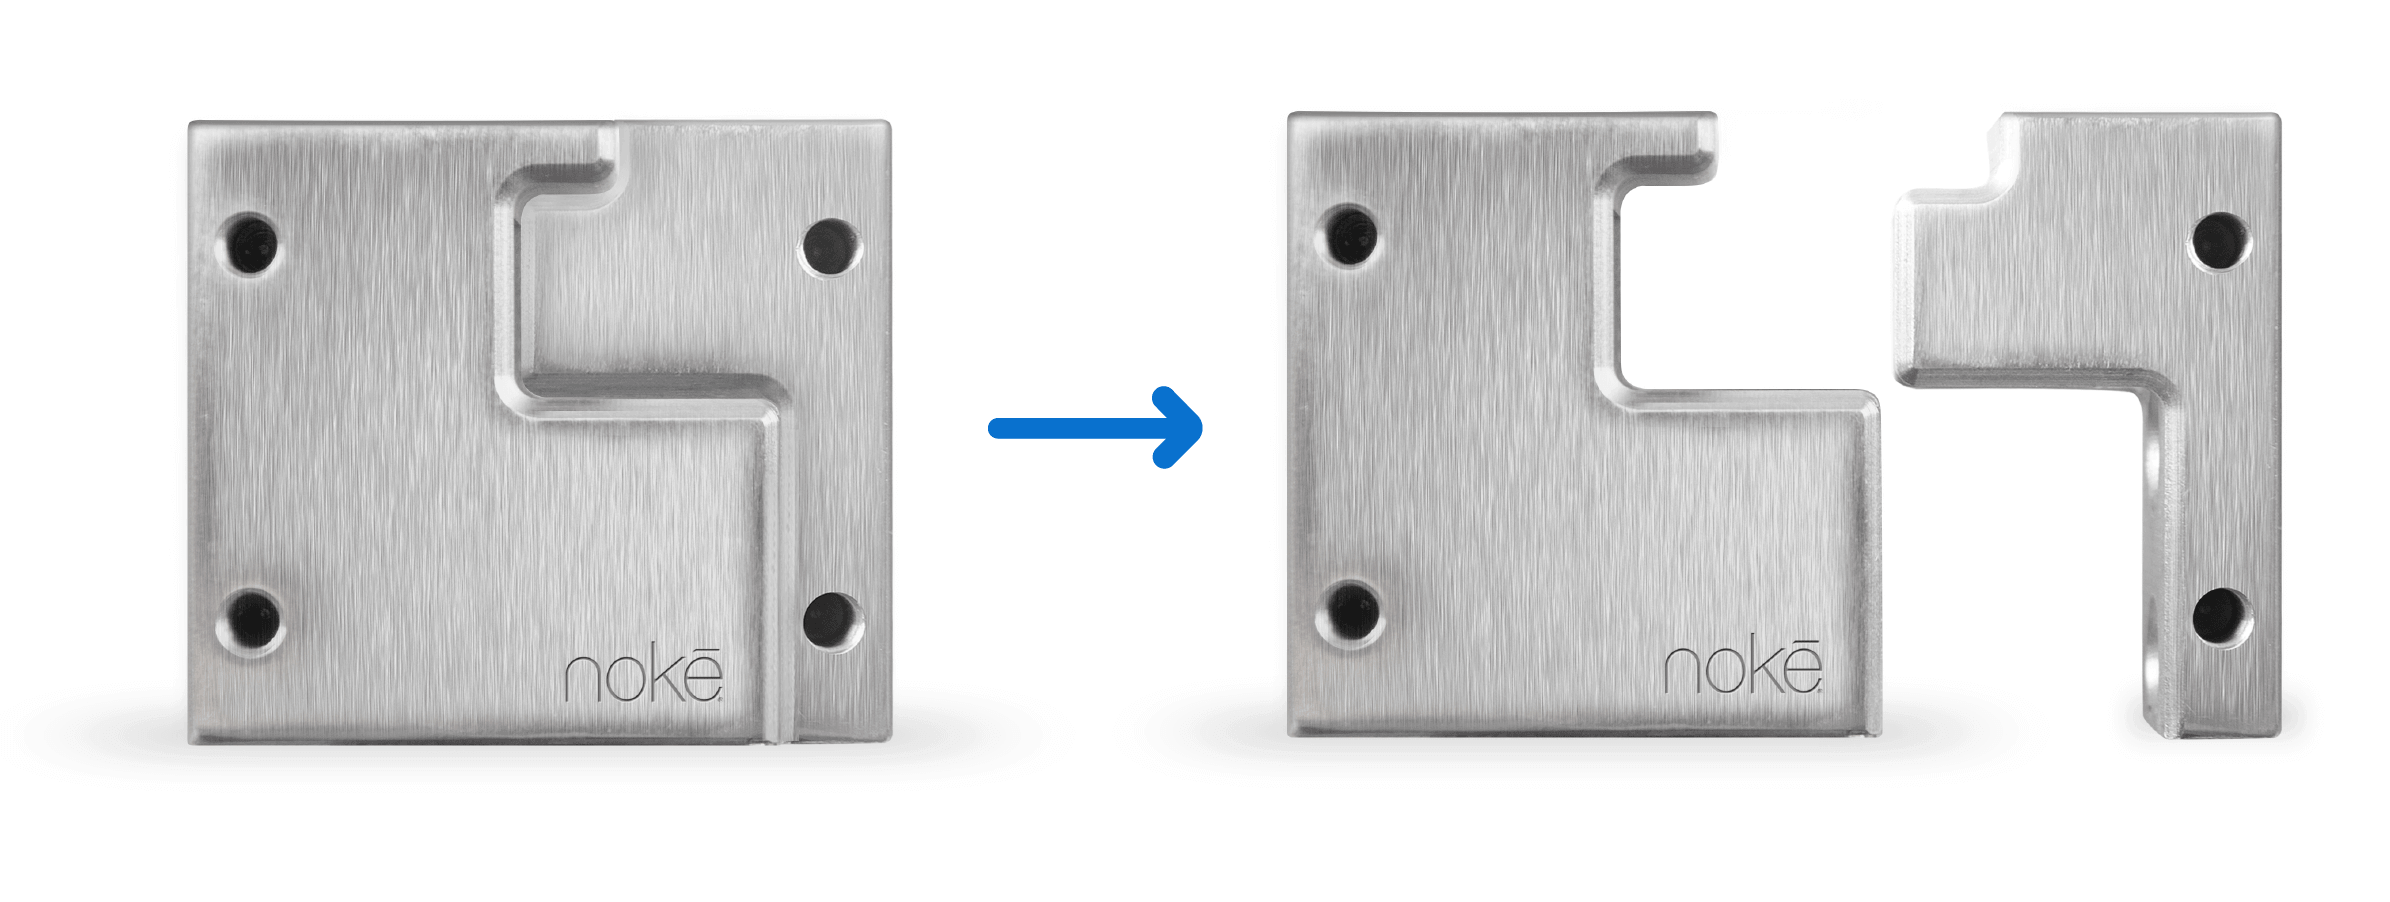 Nokē Lock Block Open